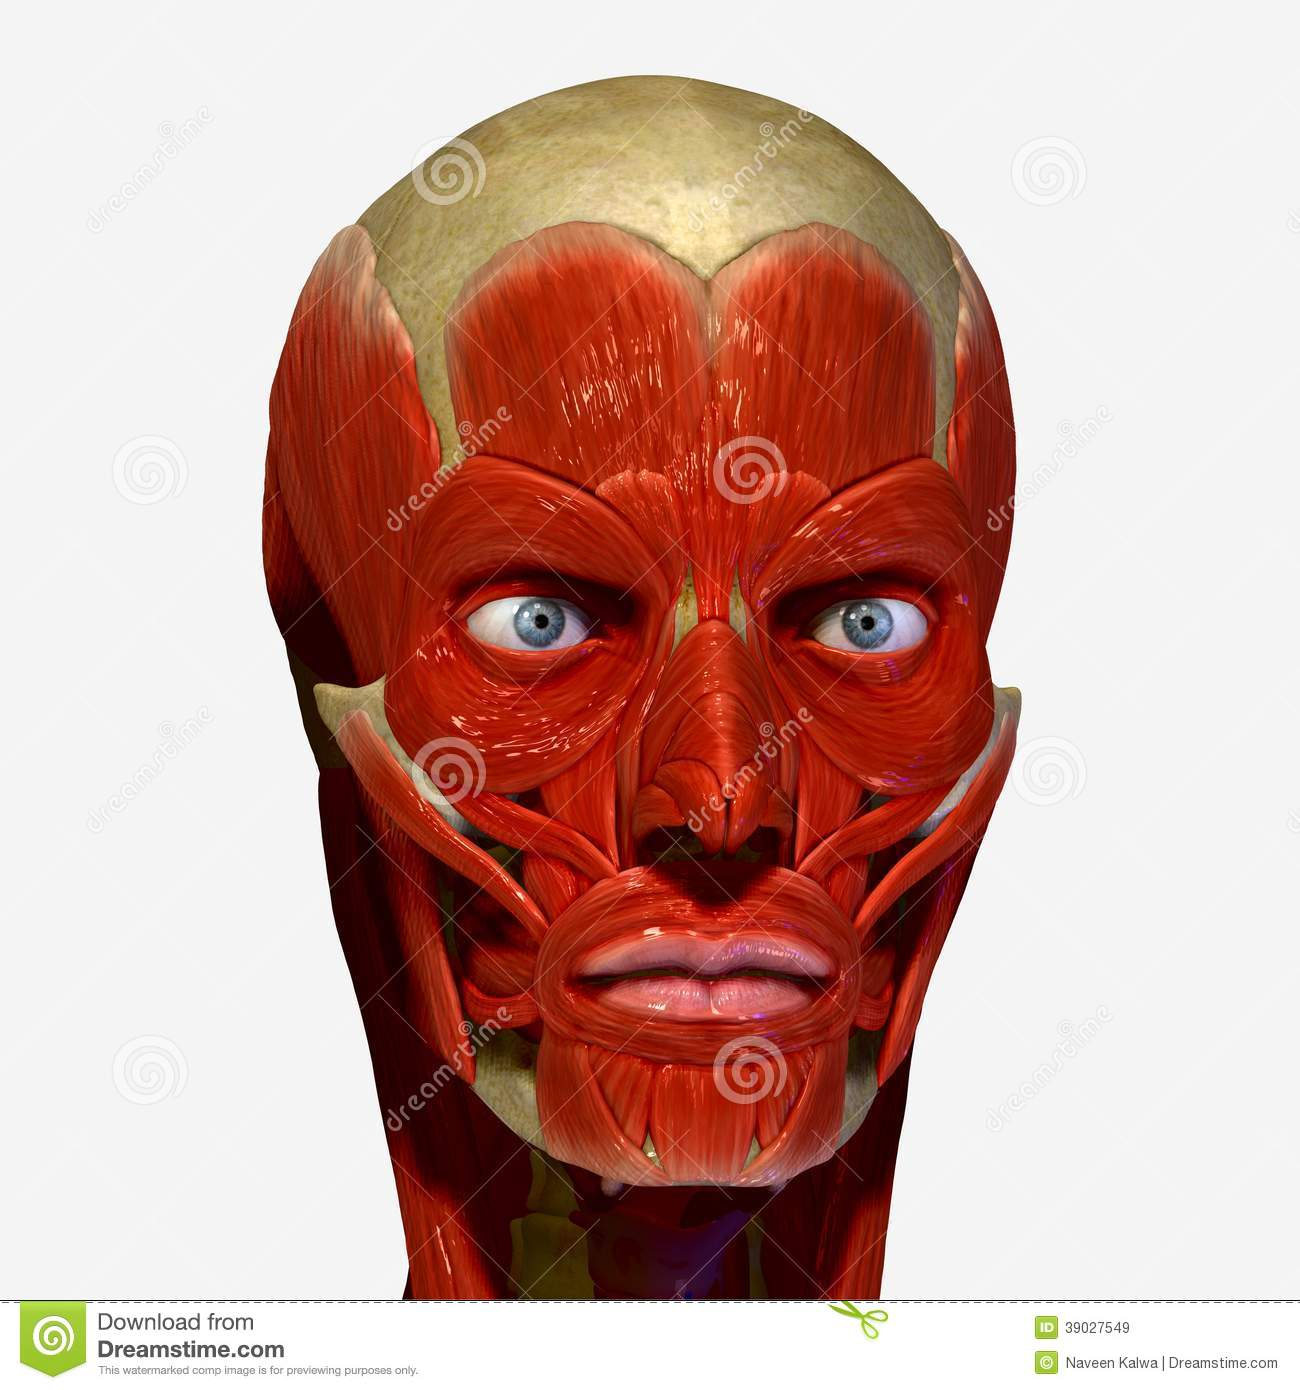 Facial muscles stock illustration. Illustration of facial - 39027549